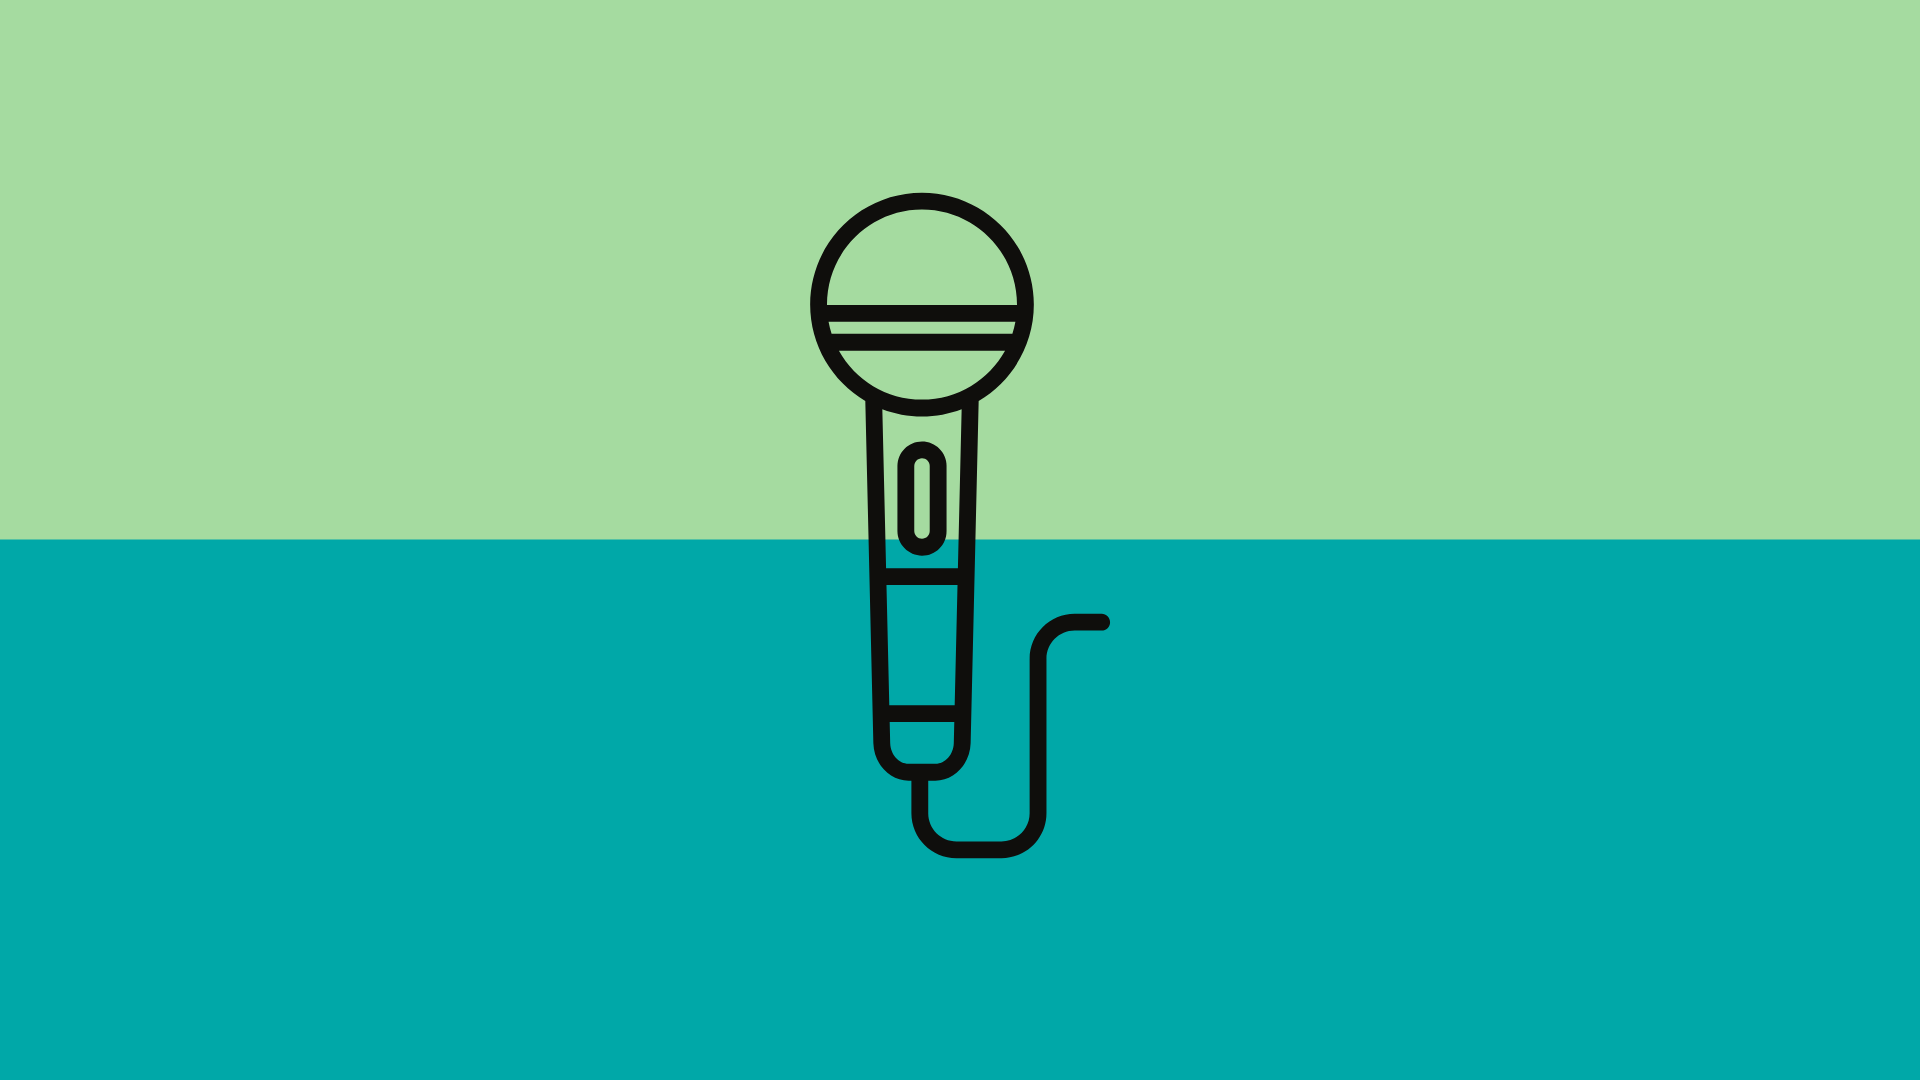 Line art of a microphone over a blue and green background